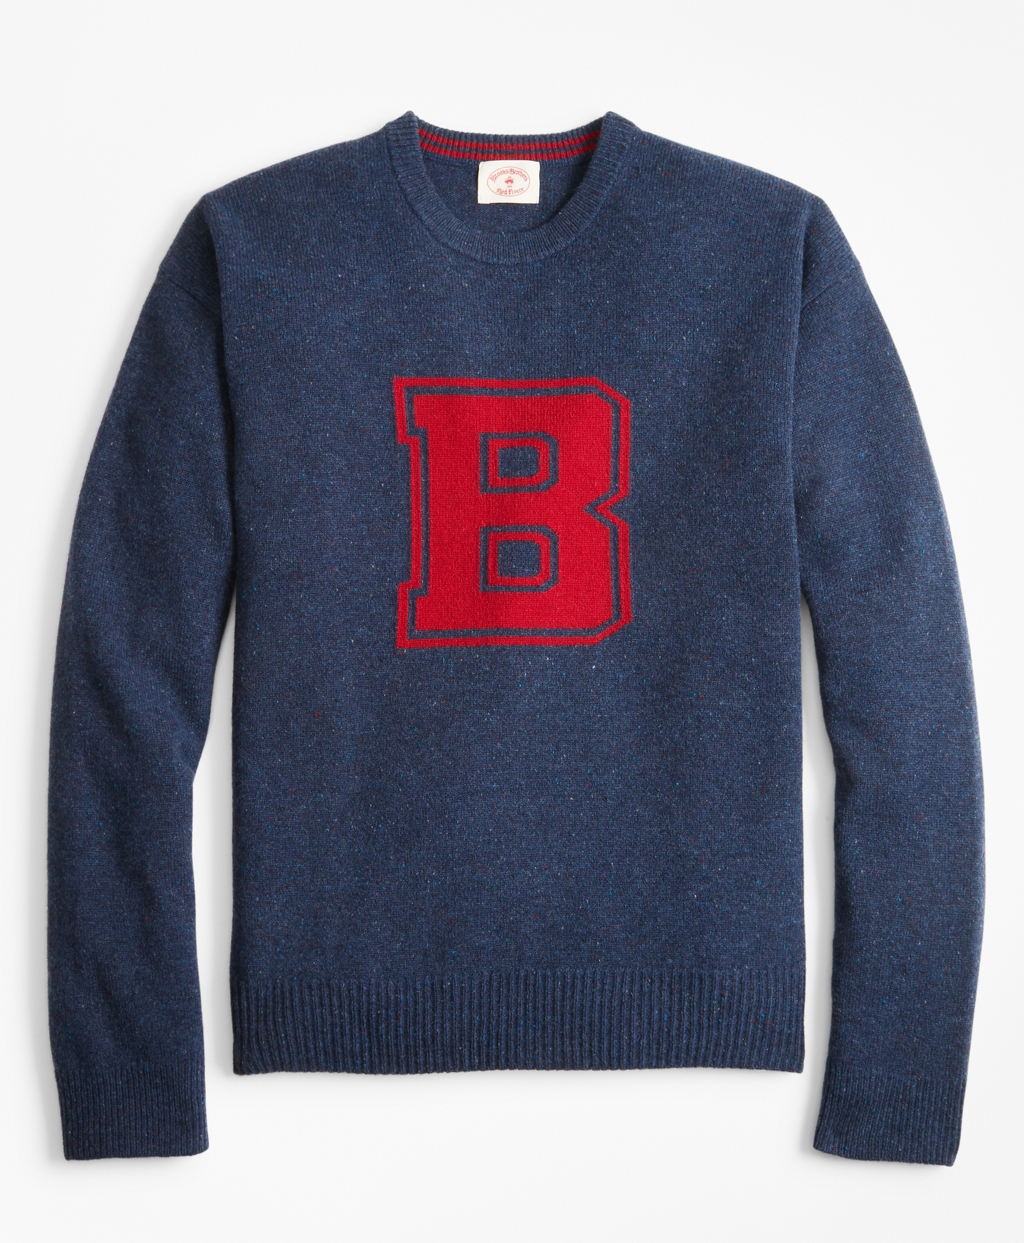 60s -70s  Men's Costumes : Hippie, Disco, Beatles Brooks Brothers Mens Donegal Wool Crewneck Letter Sweater $89.50 AT vintagedancer.com